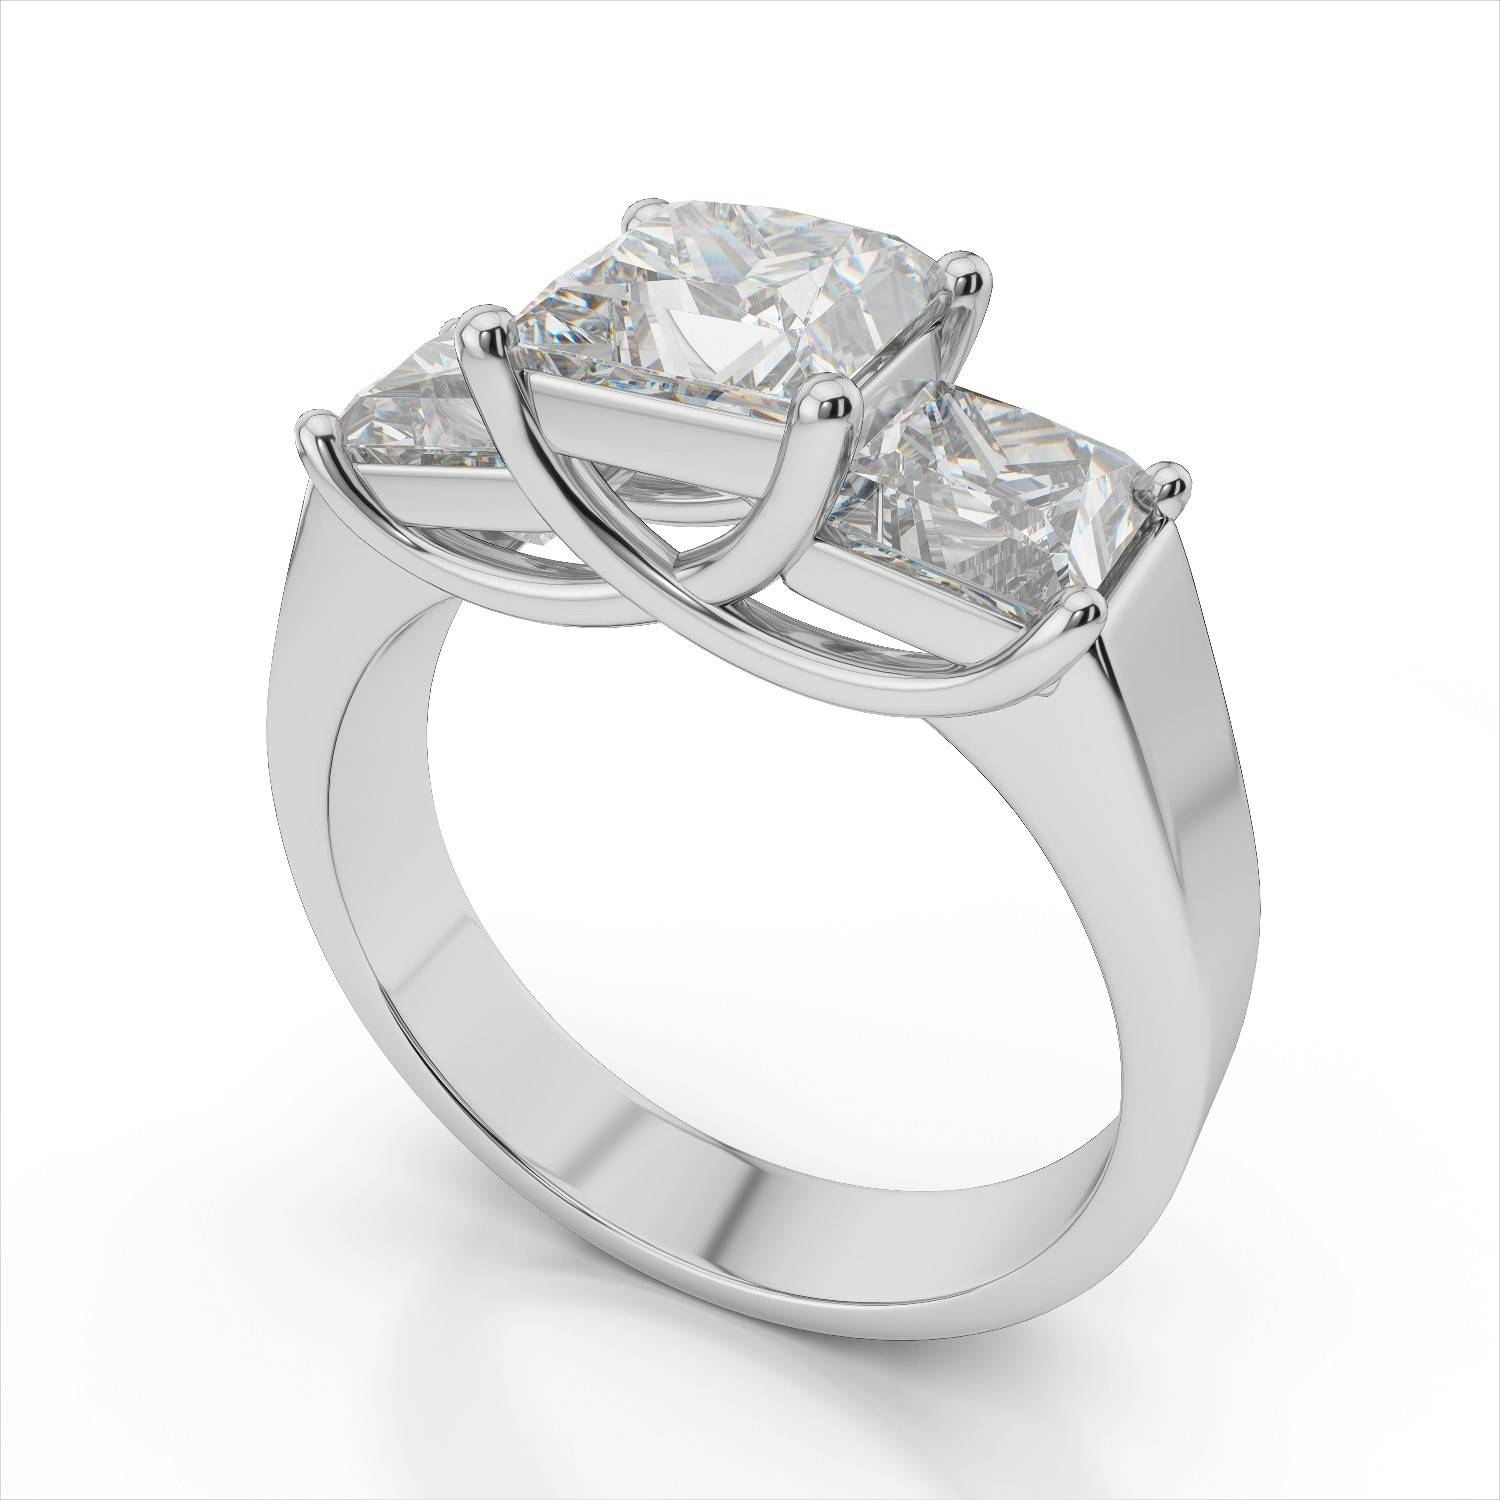 Rings : 3 Stone Ring 3 Stone Princess Cut Engagement Rings Diamond Throughout Latest 3 Stone Anniversary Rings Settings (View 10 of 25)